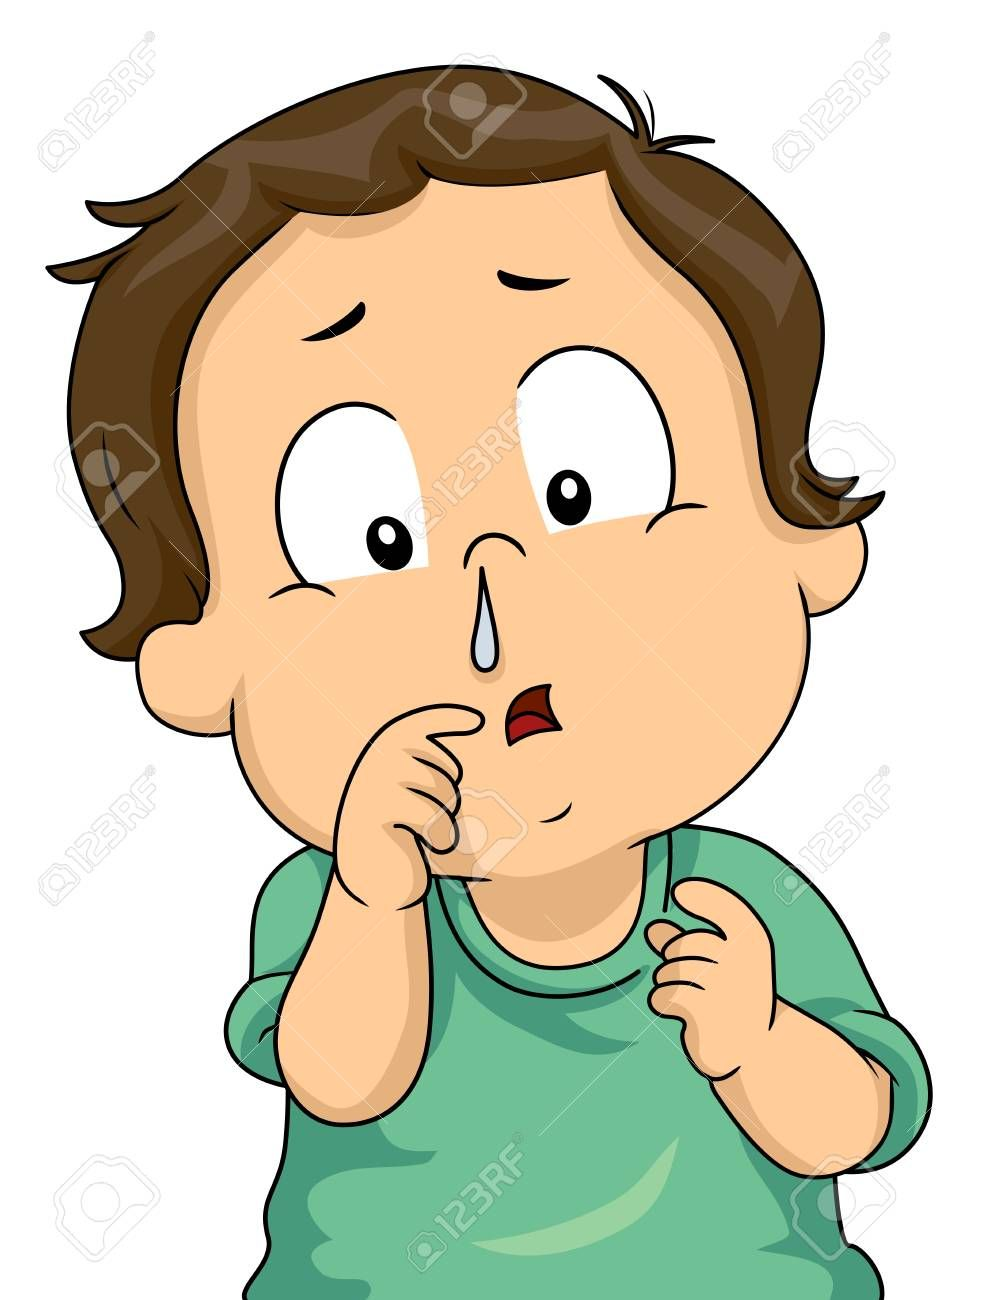 Illustration Of A Kid Boy With A Runny Nose Sponsored Kid Illustration Boy Nose Runny